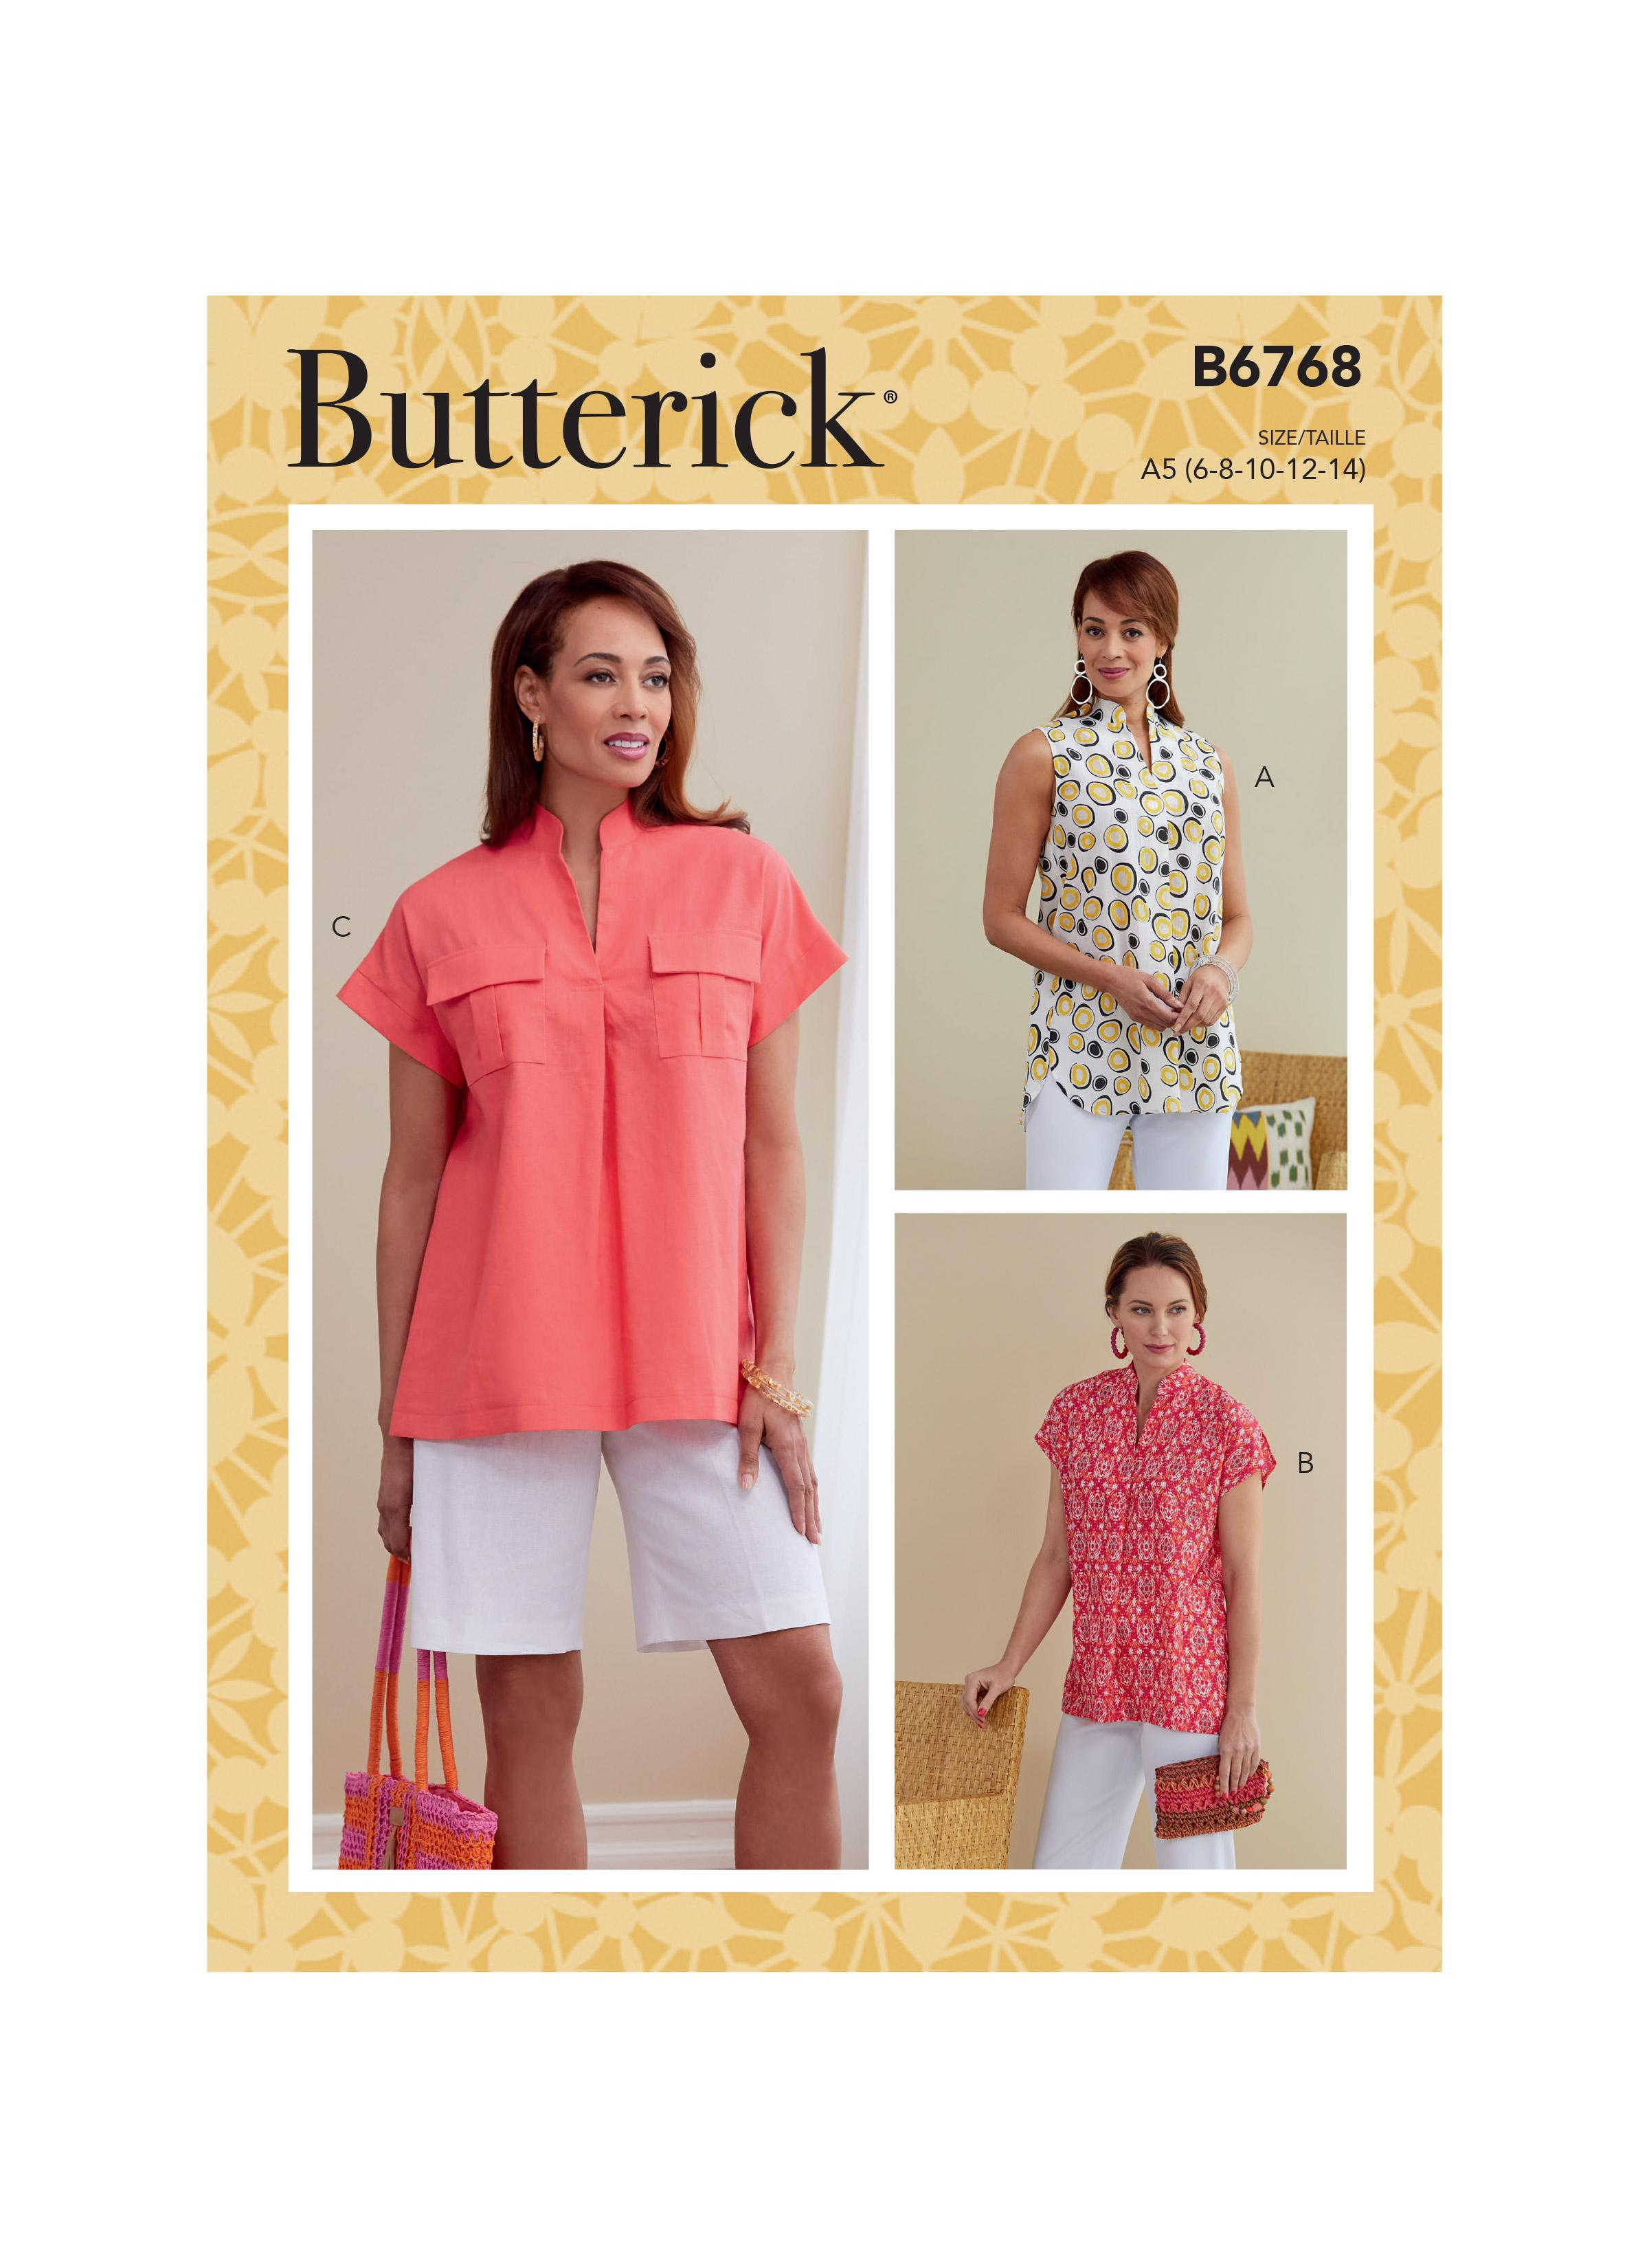 Butterick B6768 Misses' Top